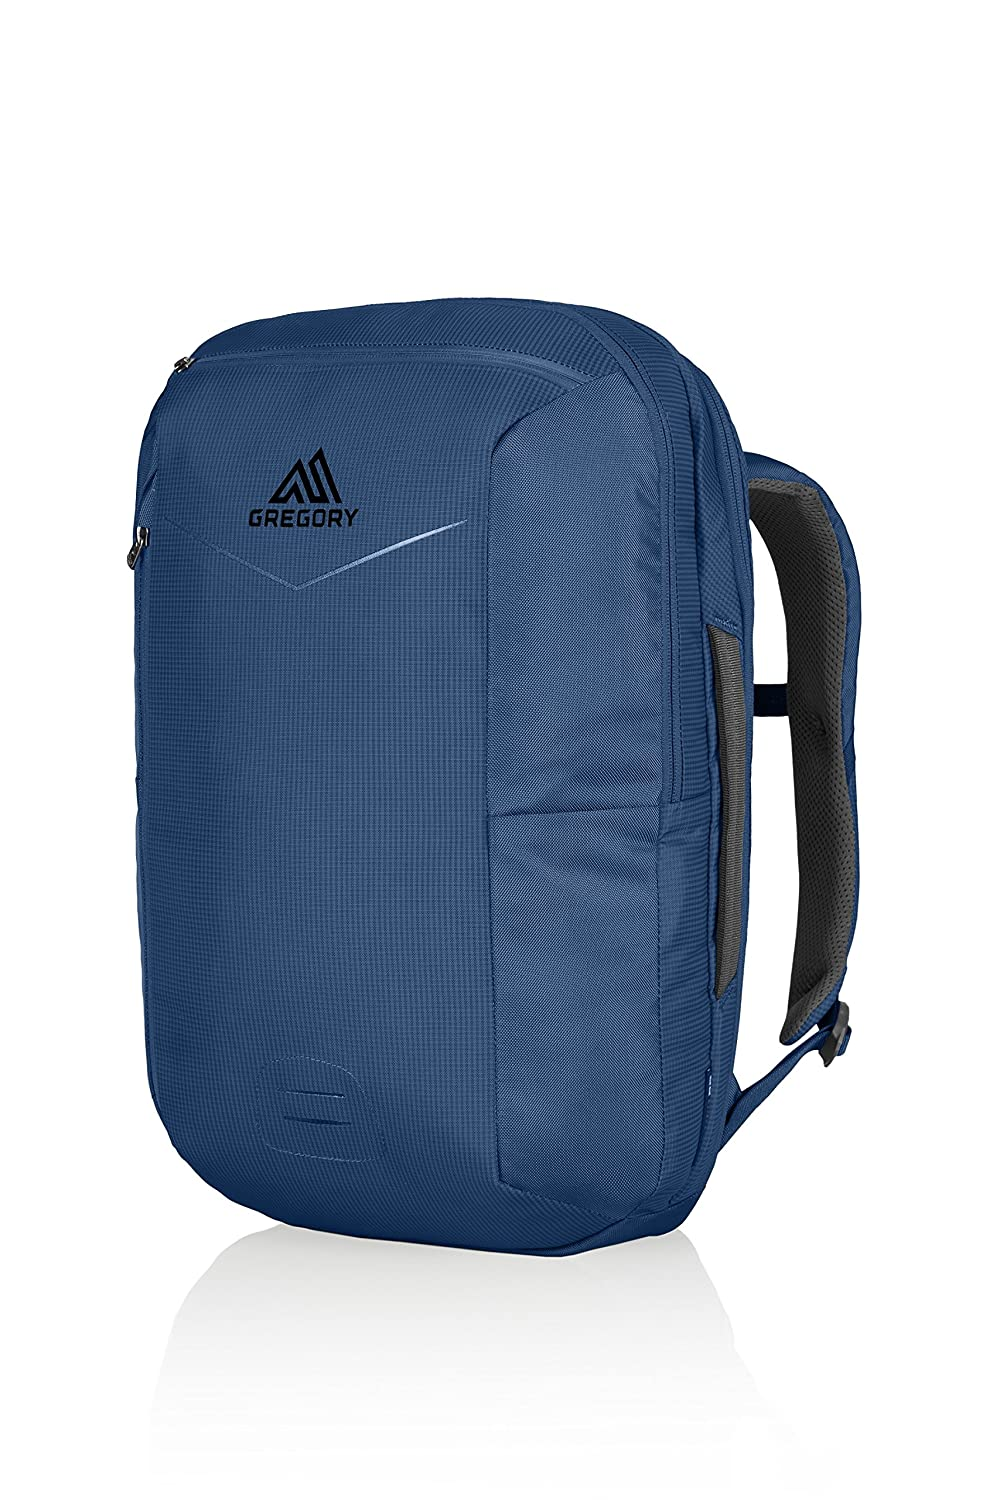 Gregory Mountain Products Border 25 Liter Daypack, Indigo Blue, One Size Size:One Size